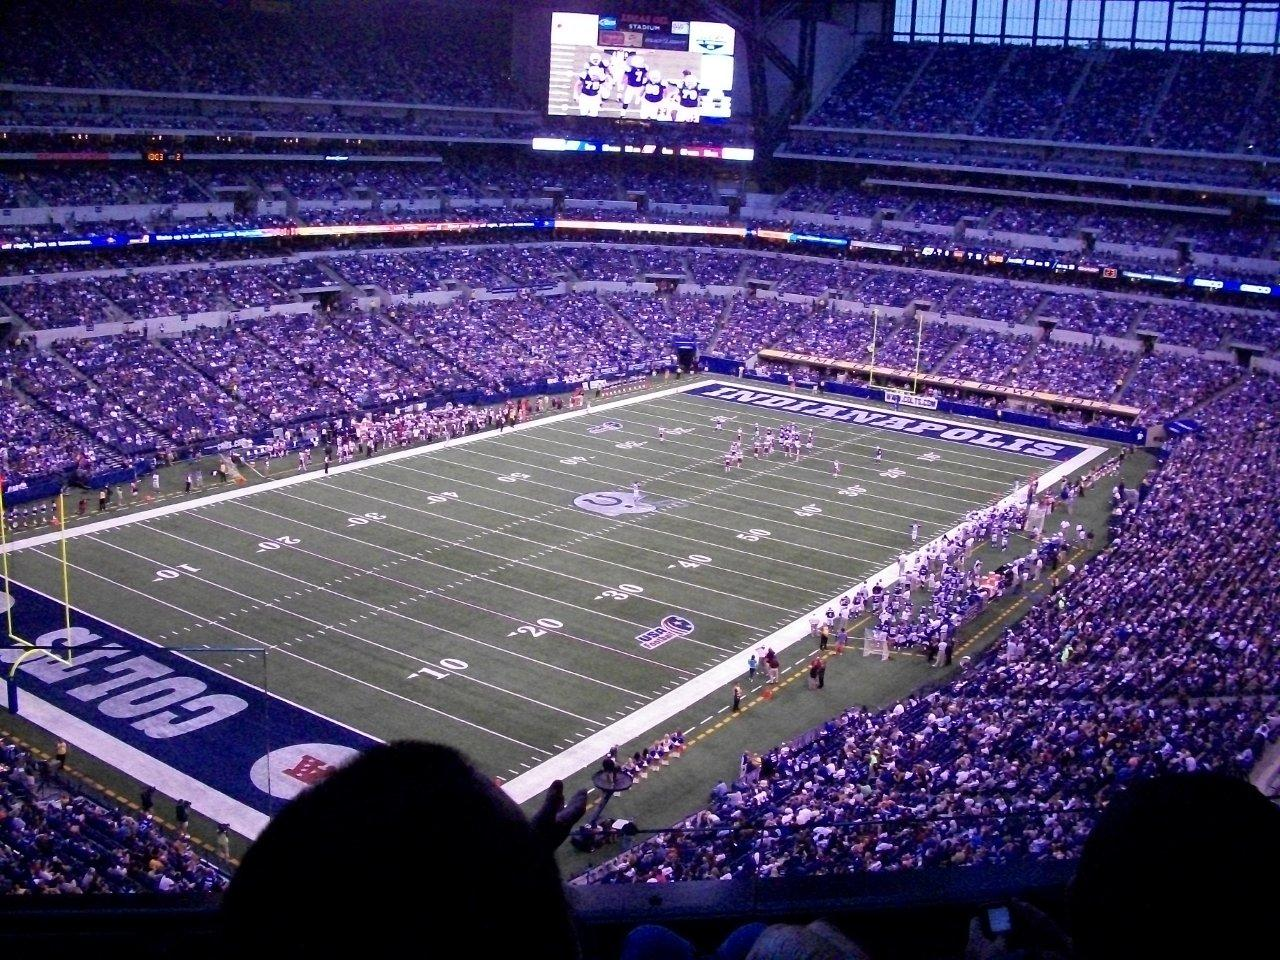 Indianapolis Colts Seat View for Lucas Oil Stadium Section 547, Row 3, Seat 24